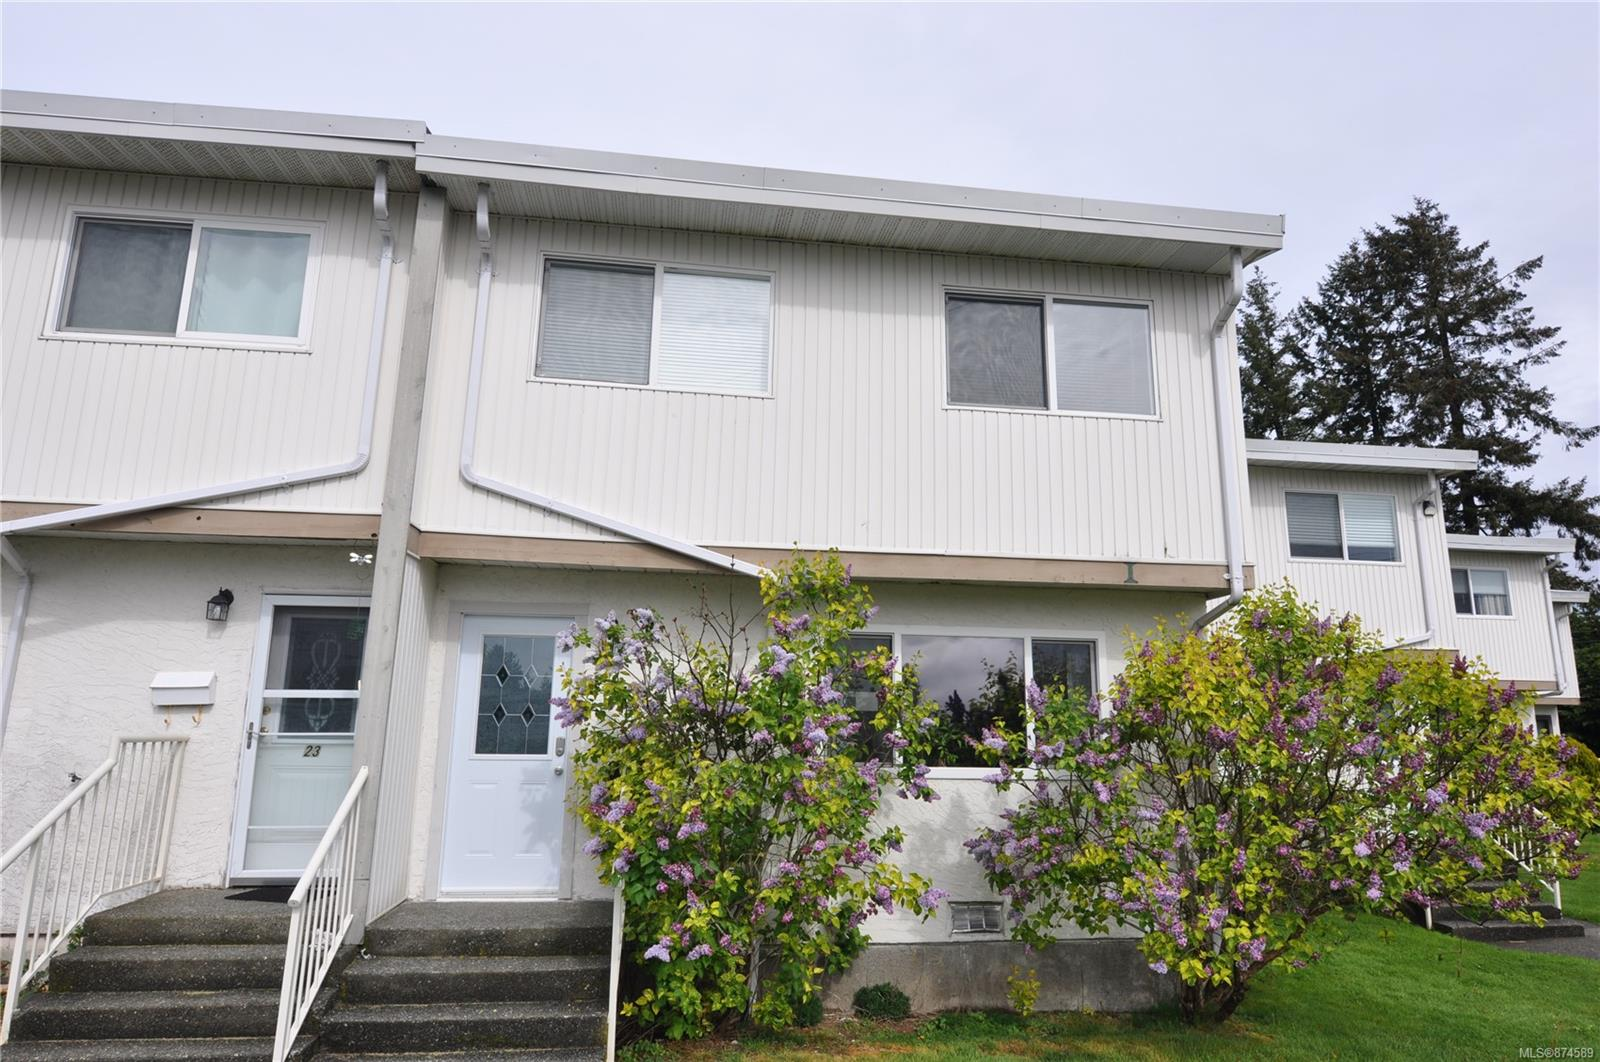 24 - 400 Robron Road, Campbell River Central, Campbell River photo number 2